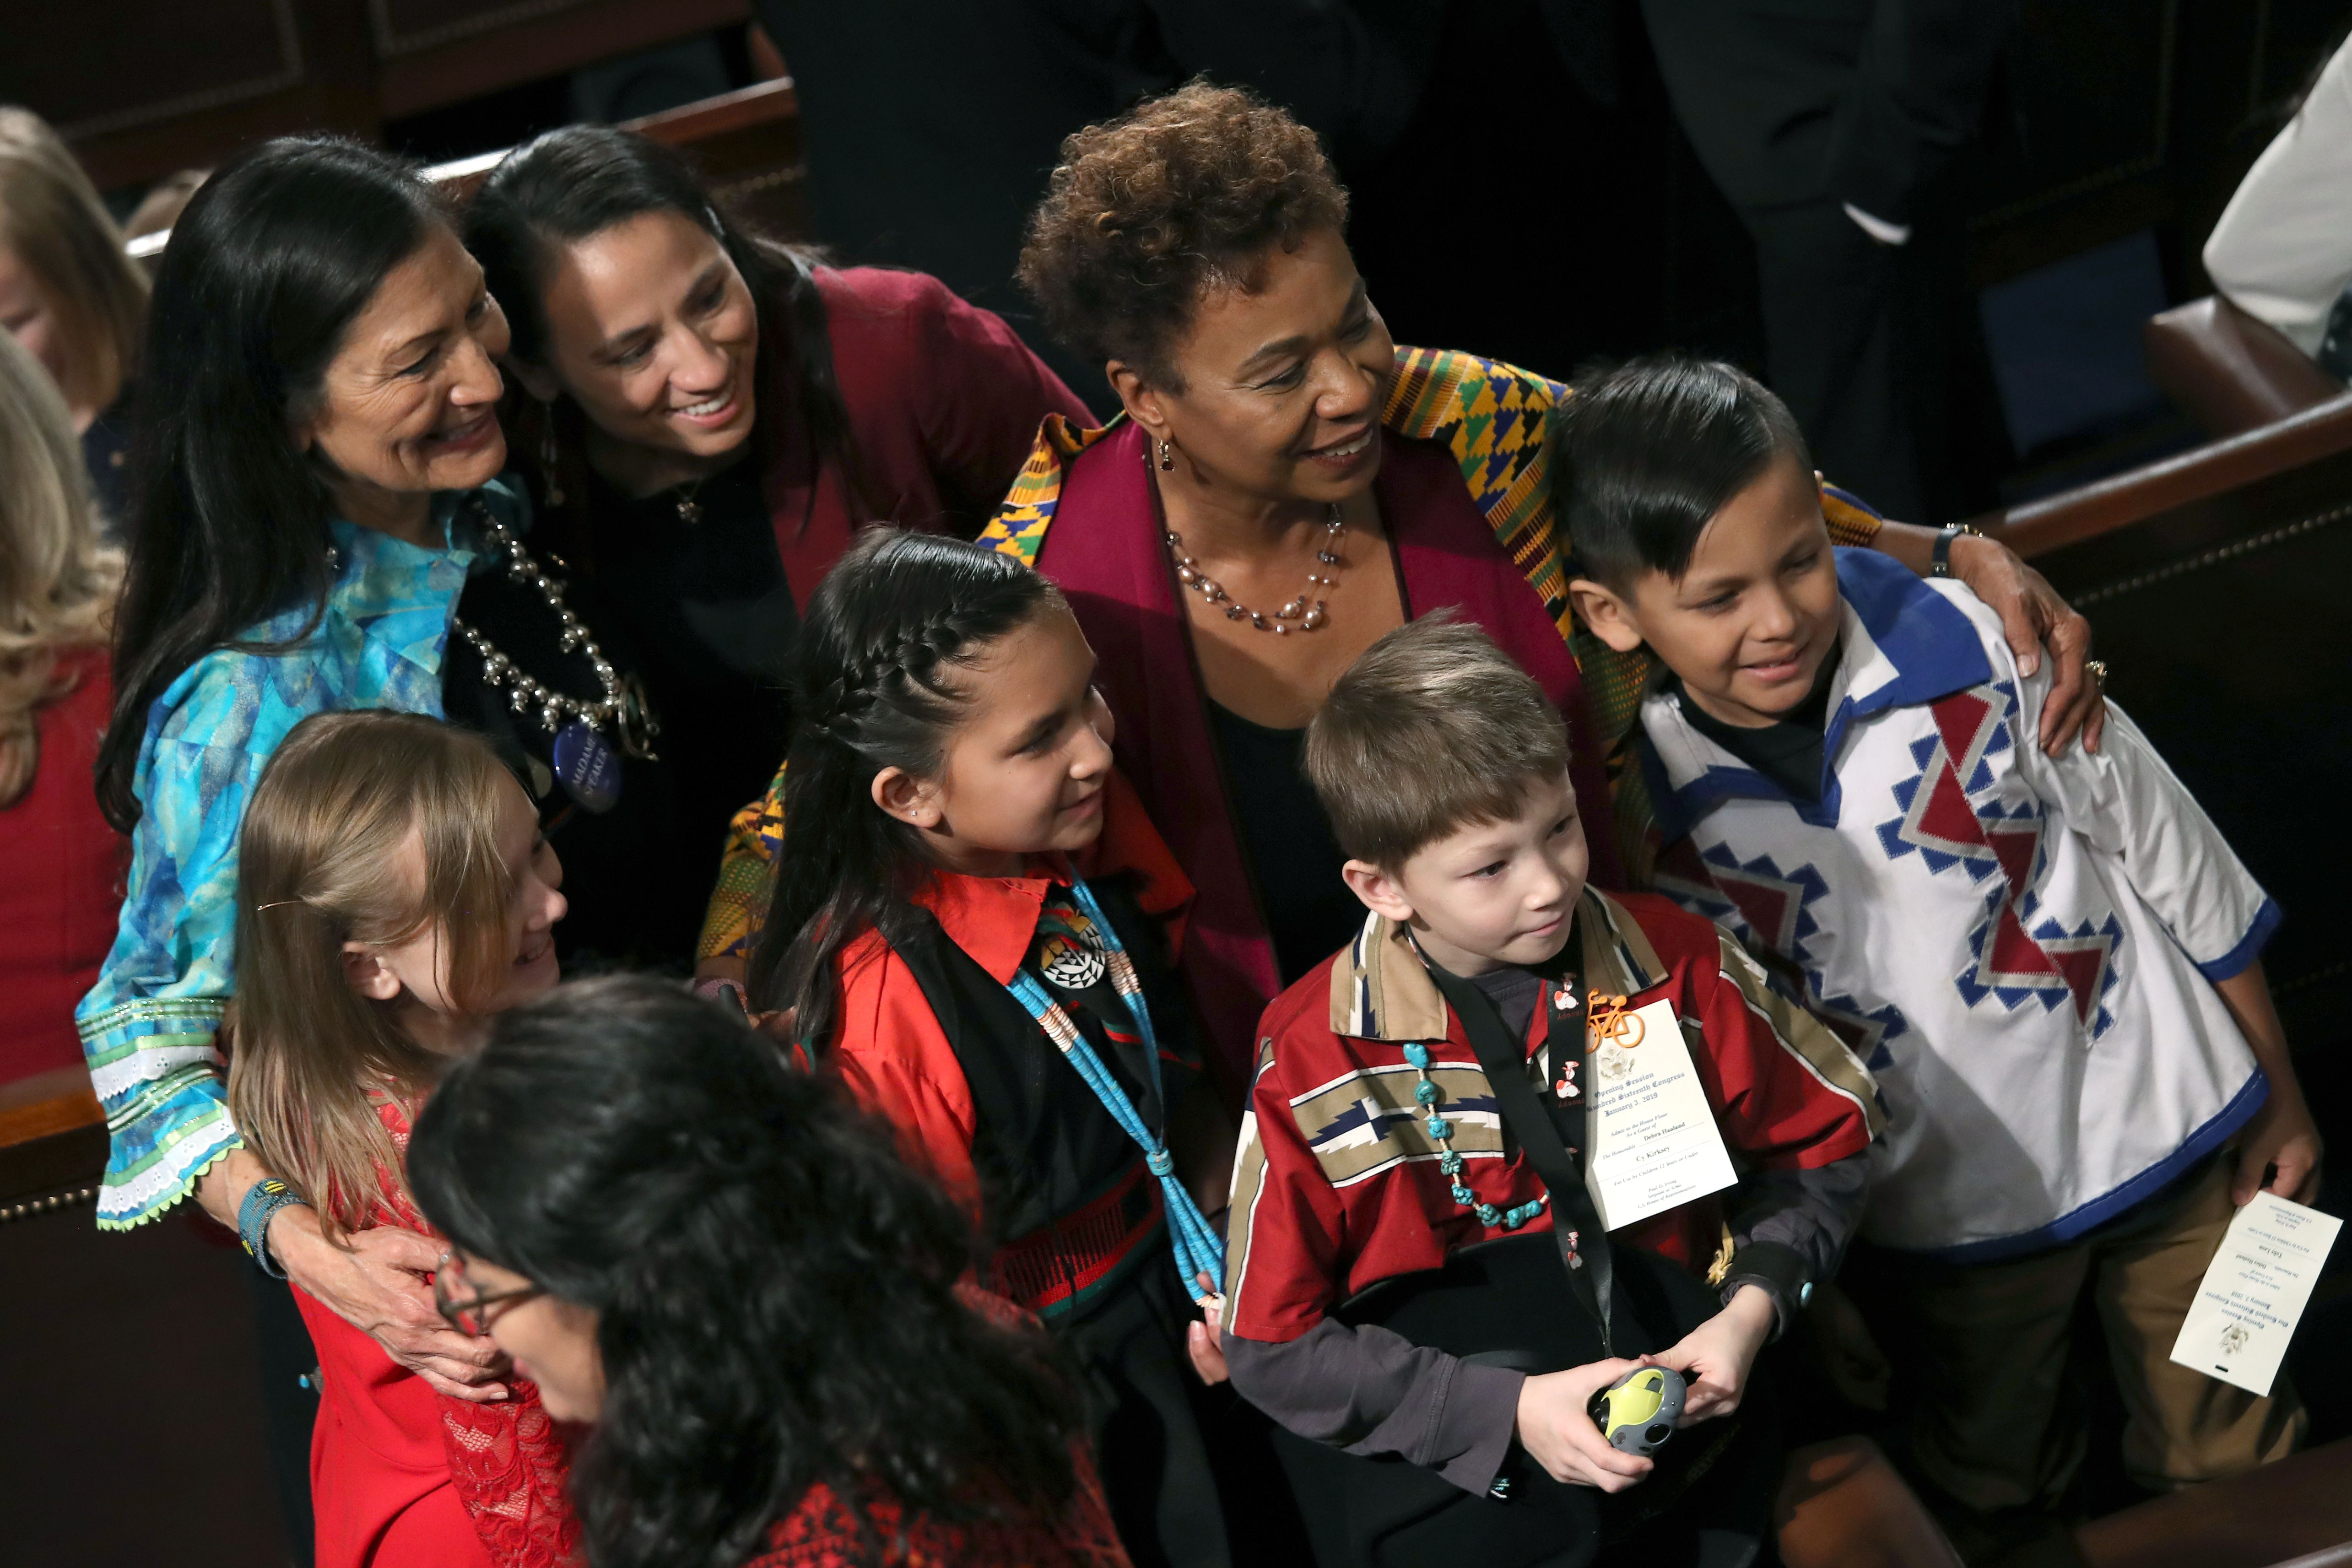 Deb Haaland, Barbara Lee, and children pose for a picture.